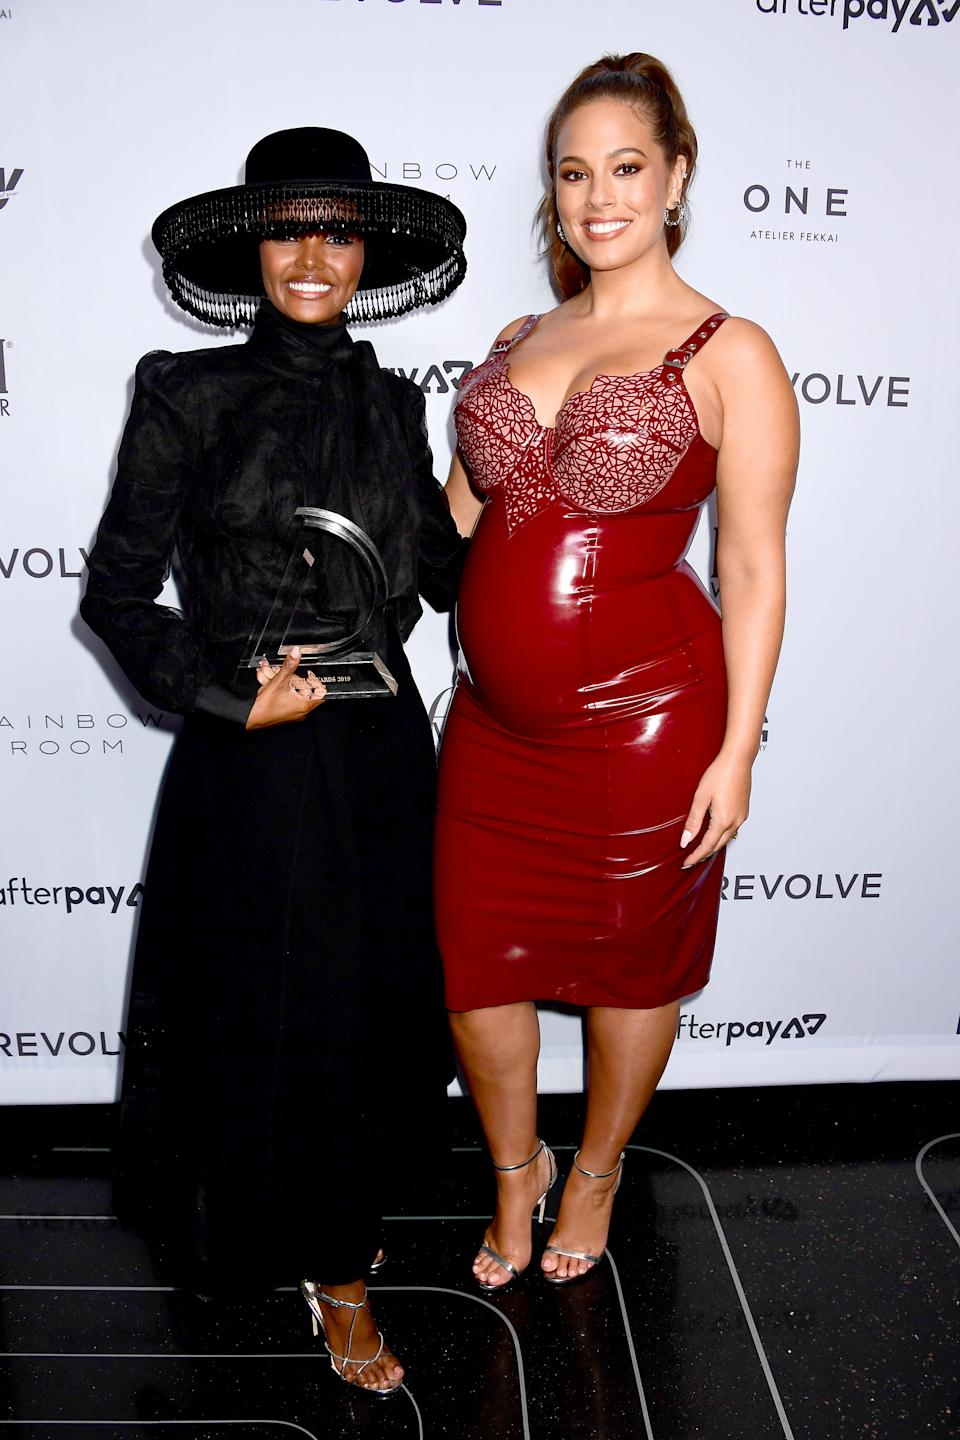 NEW YORK, NEW YORK - SEPTEMBER 05: Halina Aden and Ashley Graham attend The Daily Front Row's 7th annual Fashion Media Awards on September 05, 2019 in New York City. (Photo by Jennifer Graylock/Getty Images  for Daily Front Row, Inc.)